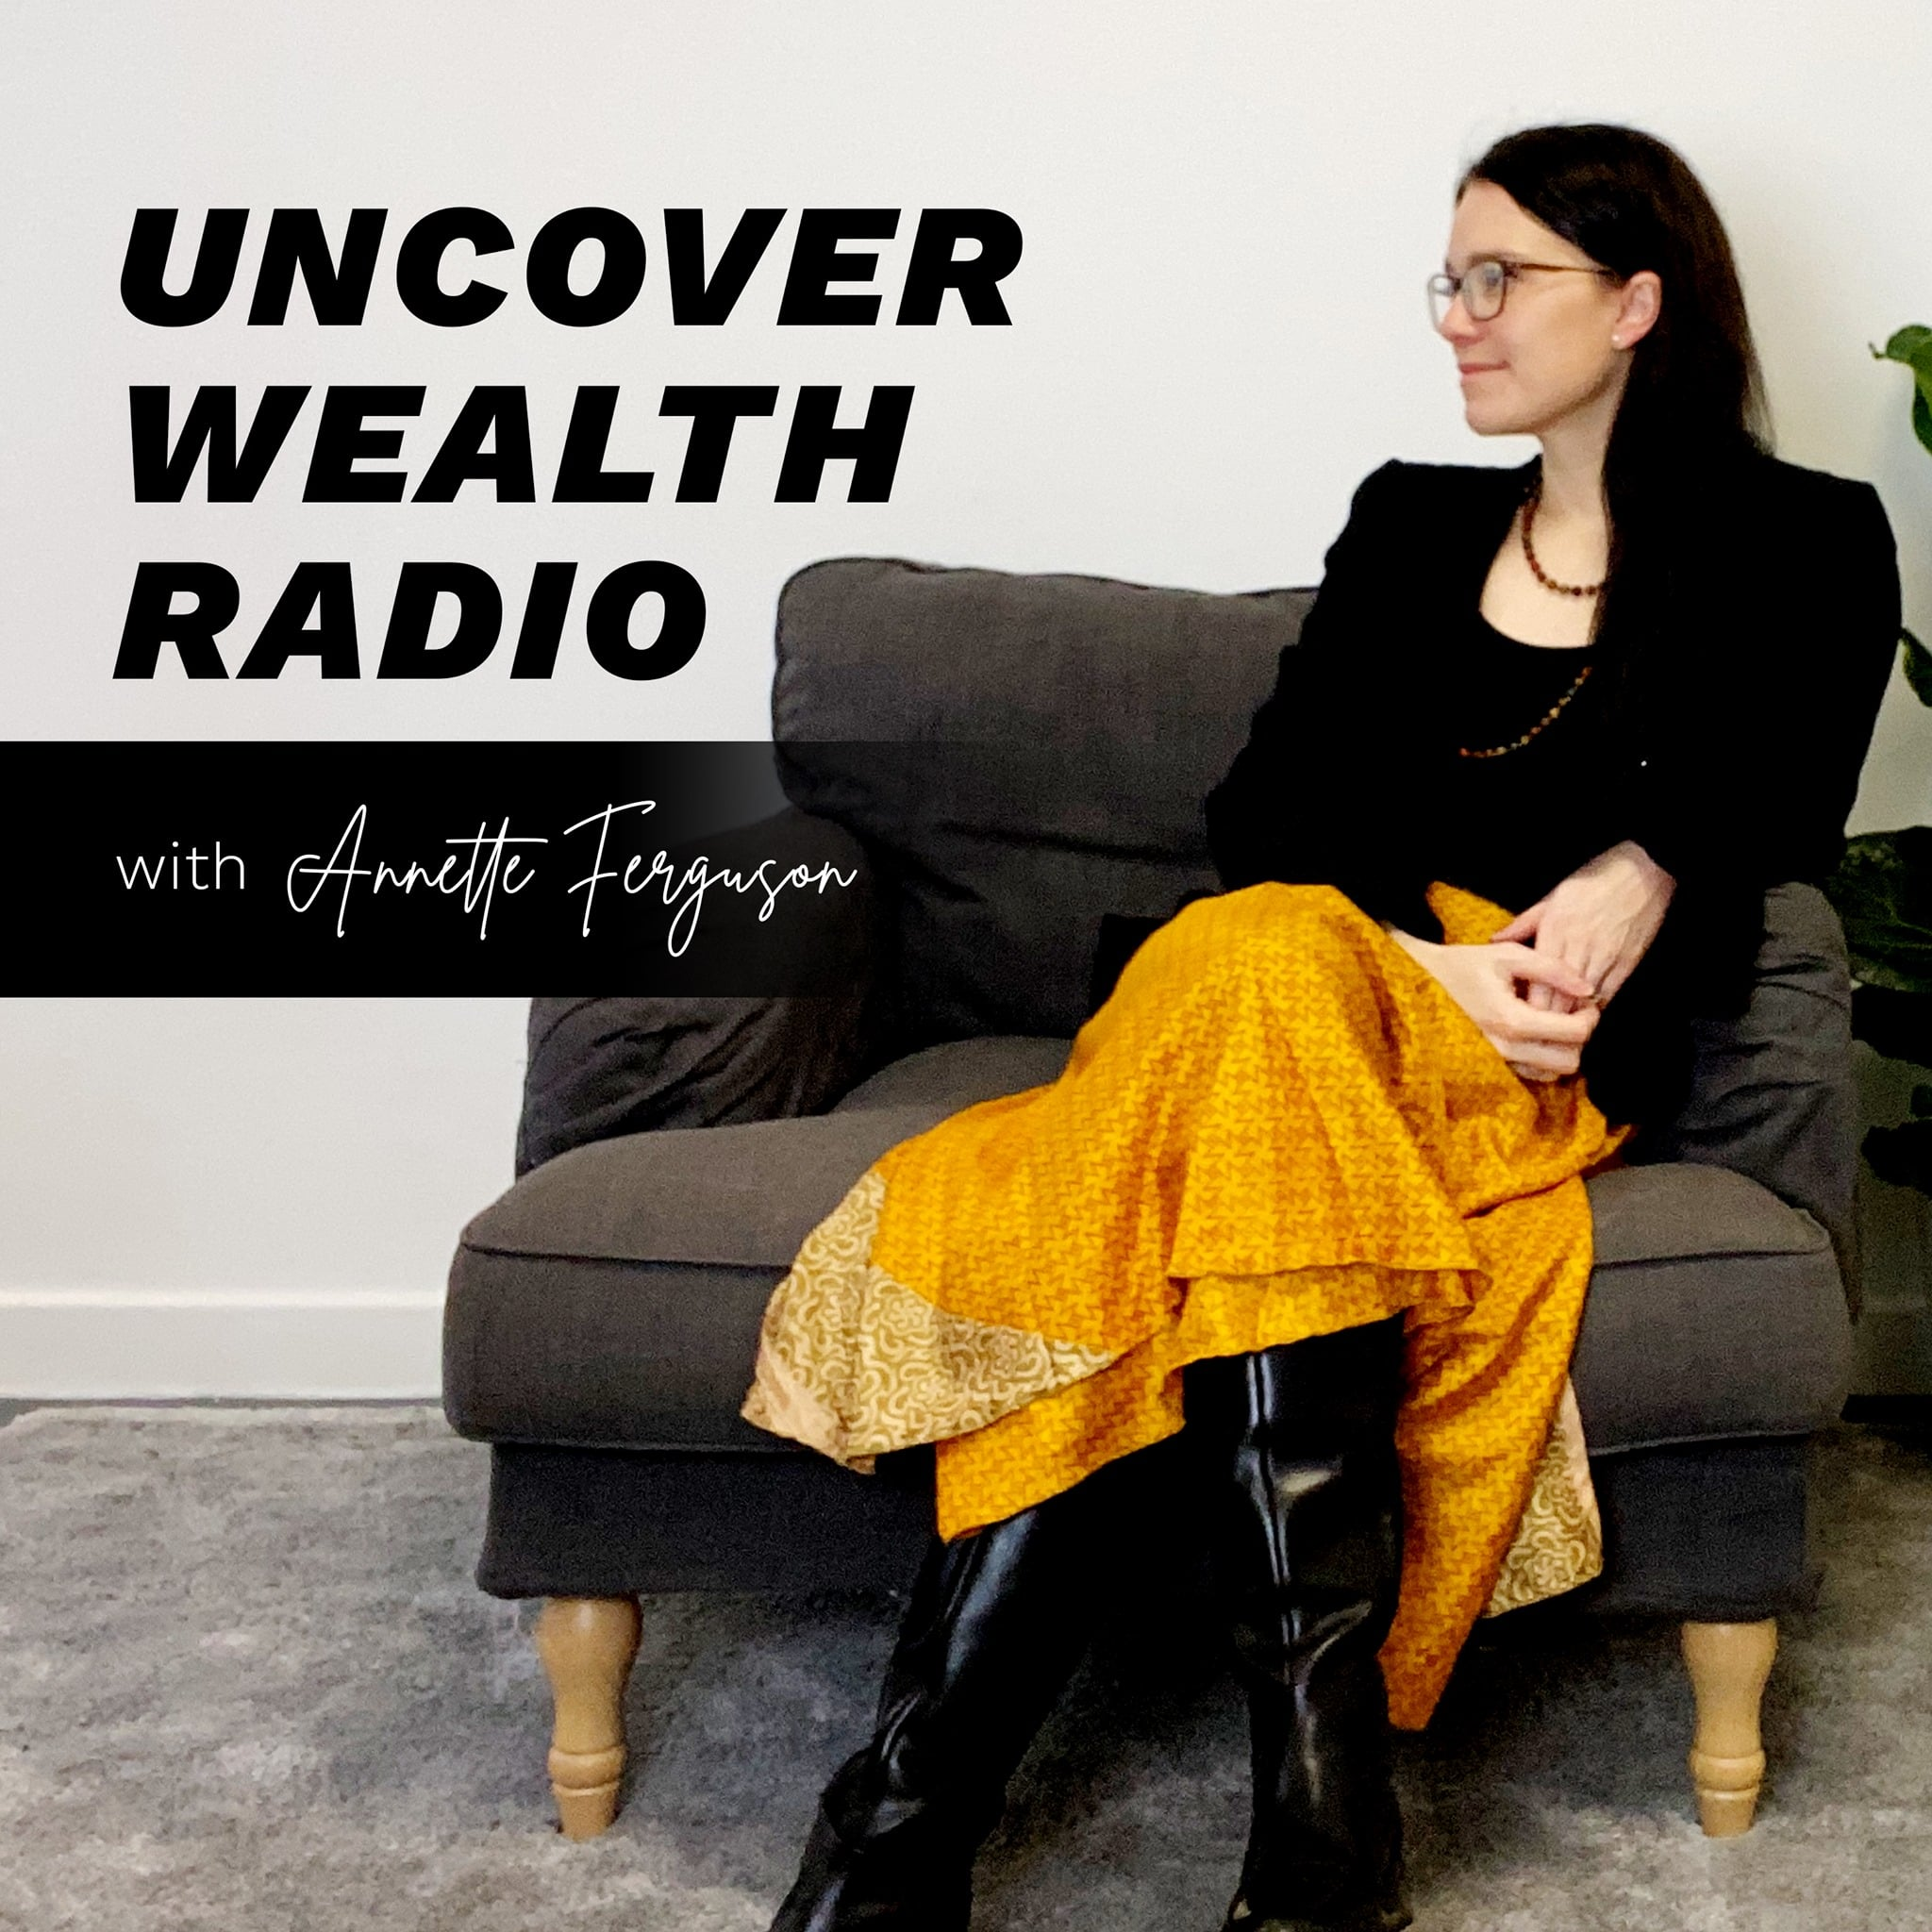 Artwork for podcast Uncover Wealth Radio